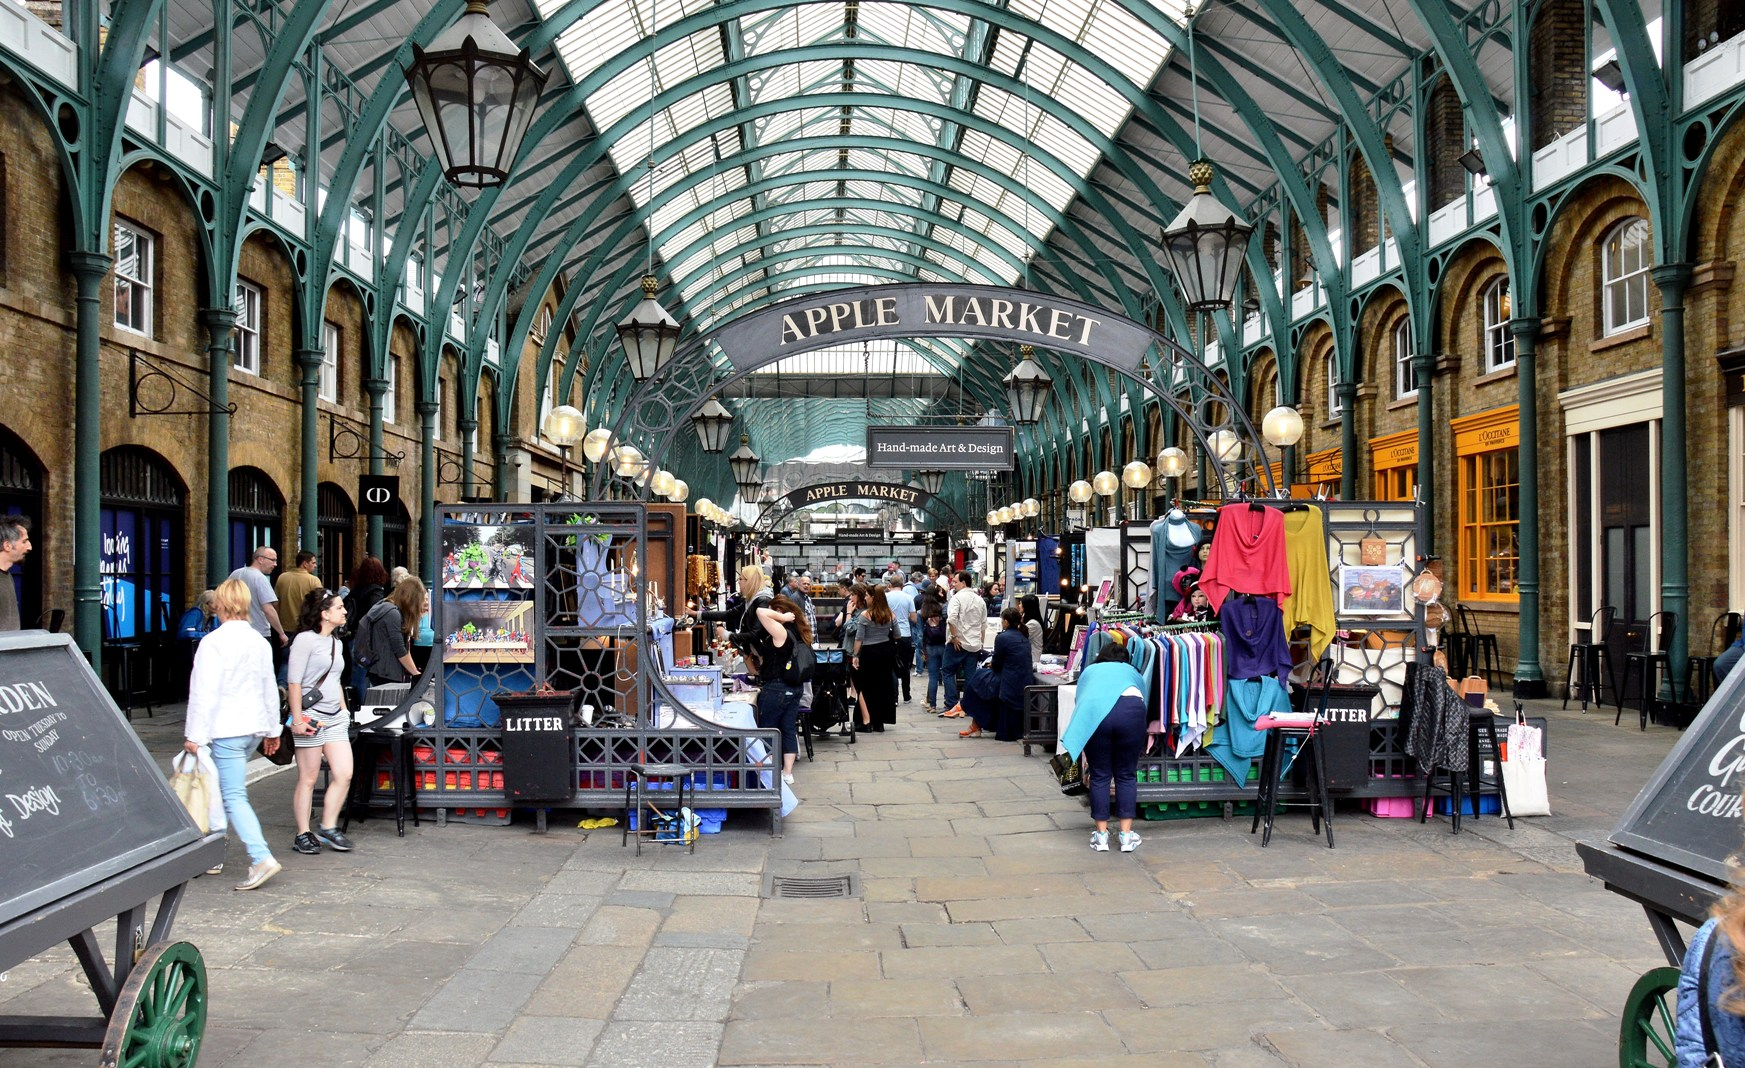 Covent garden fashion market Best Fashion Blogs: 39 of the Bloggers to Know Now Who What Wear